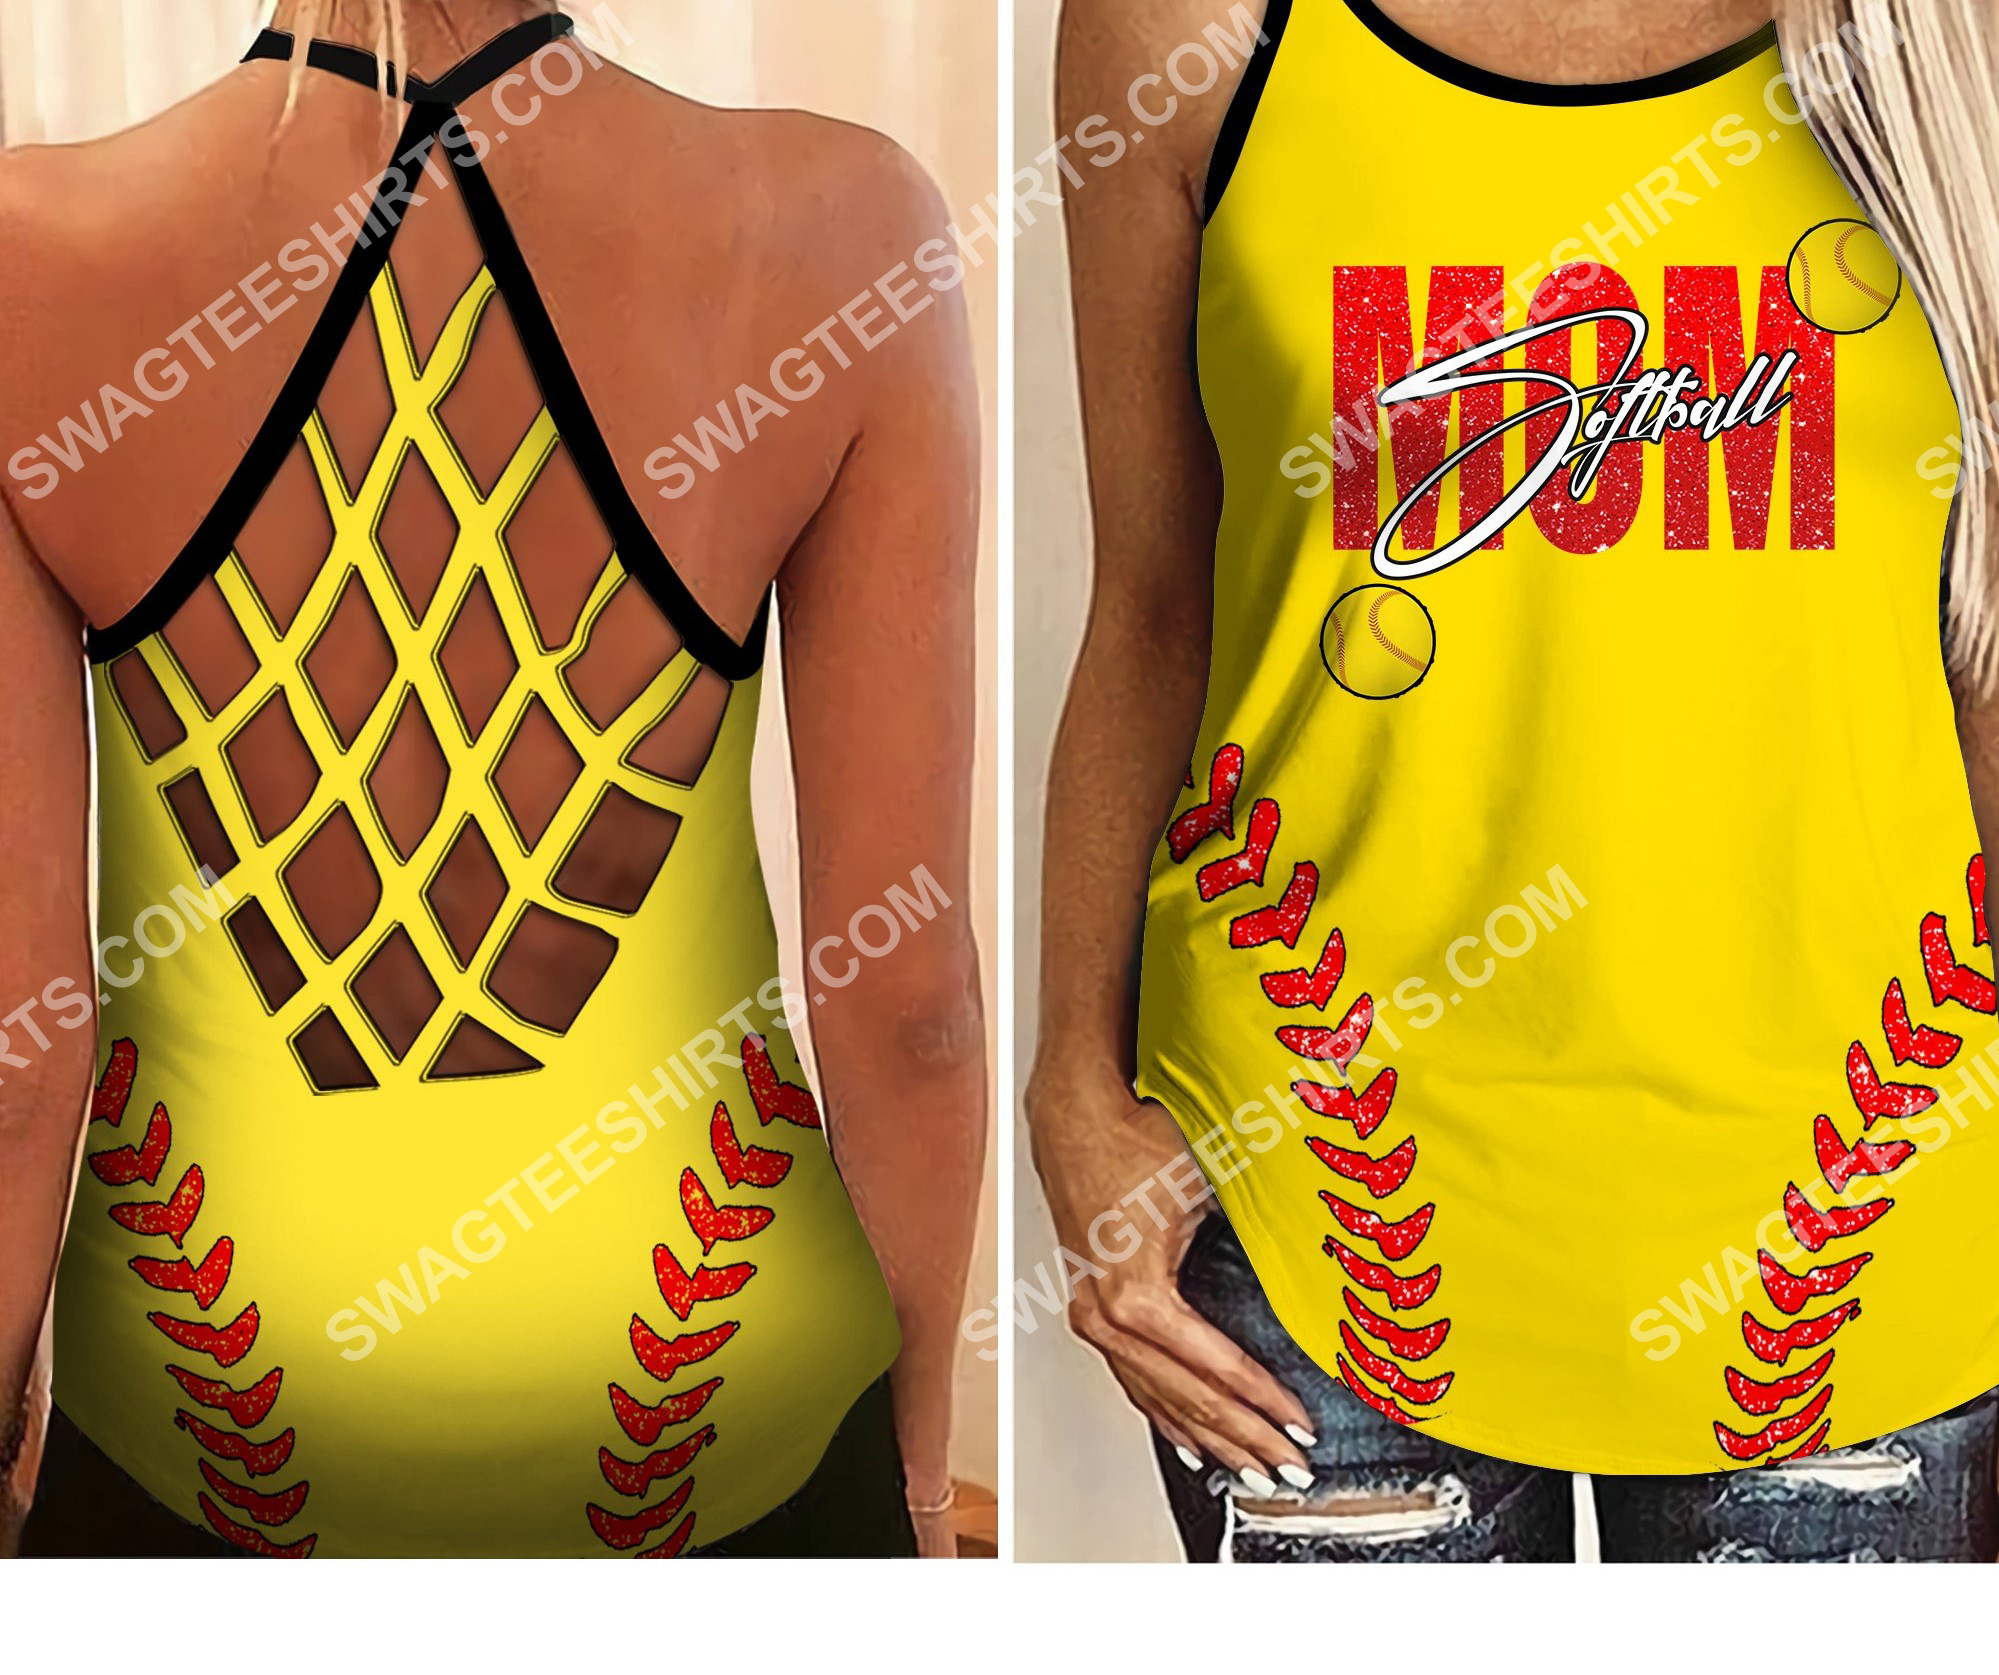 mom softball all over printed criss-cross tank top 2 - Copy (3)